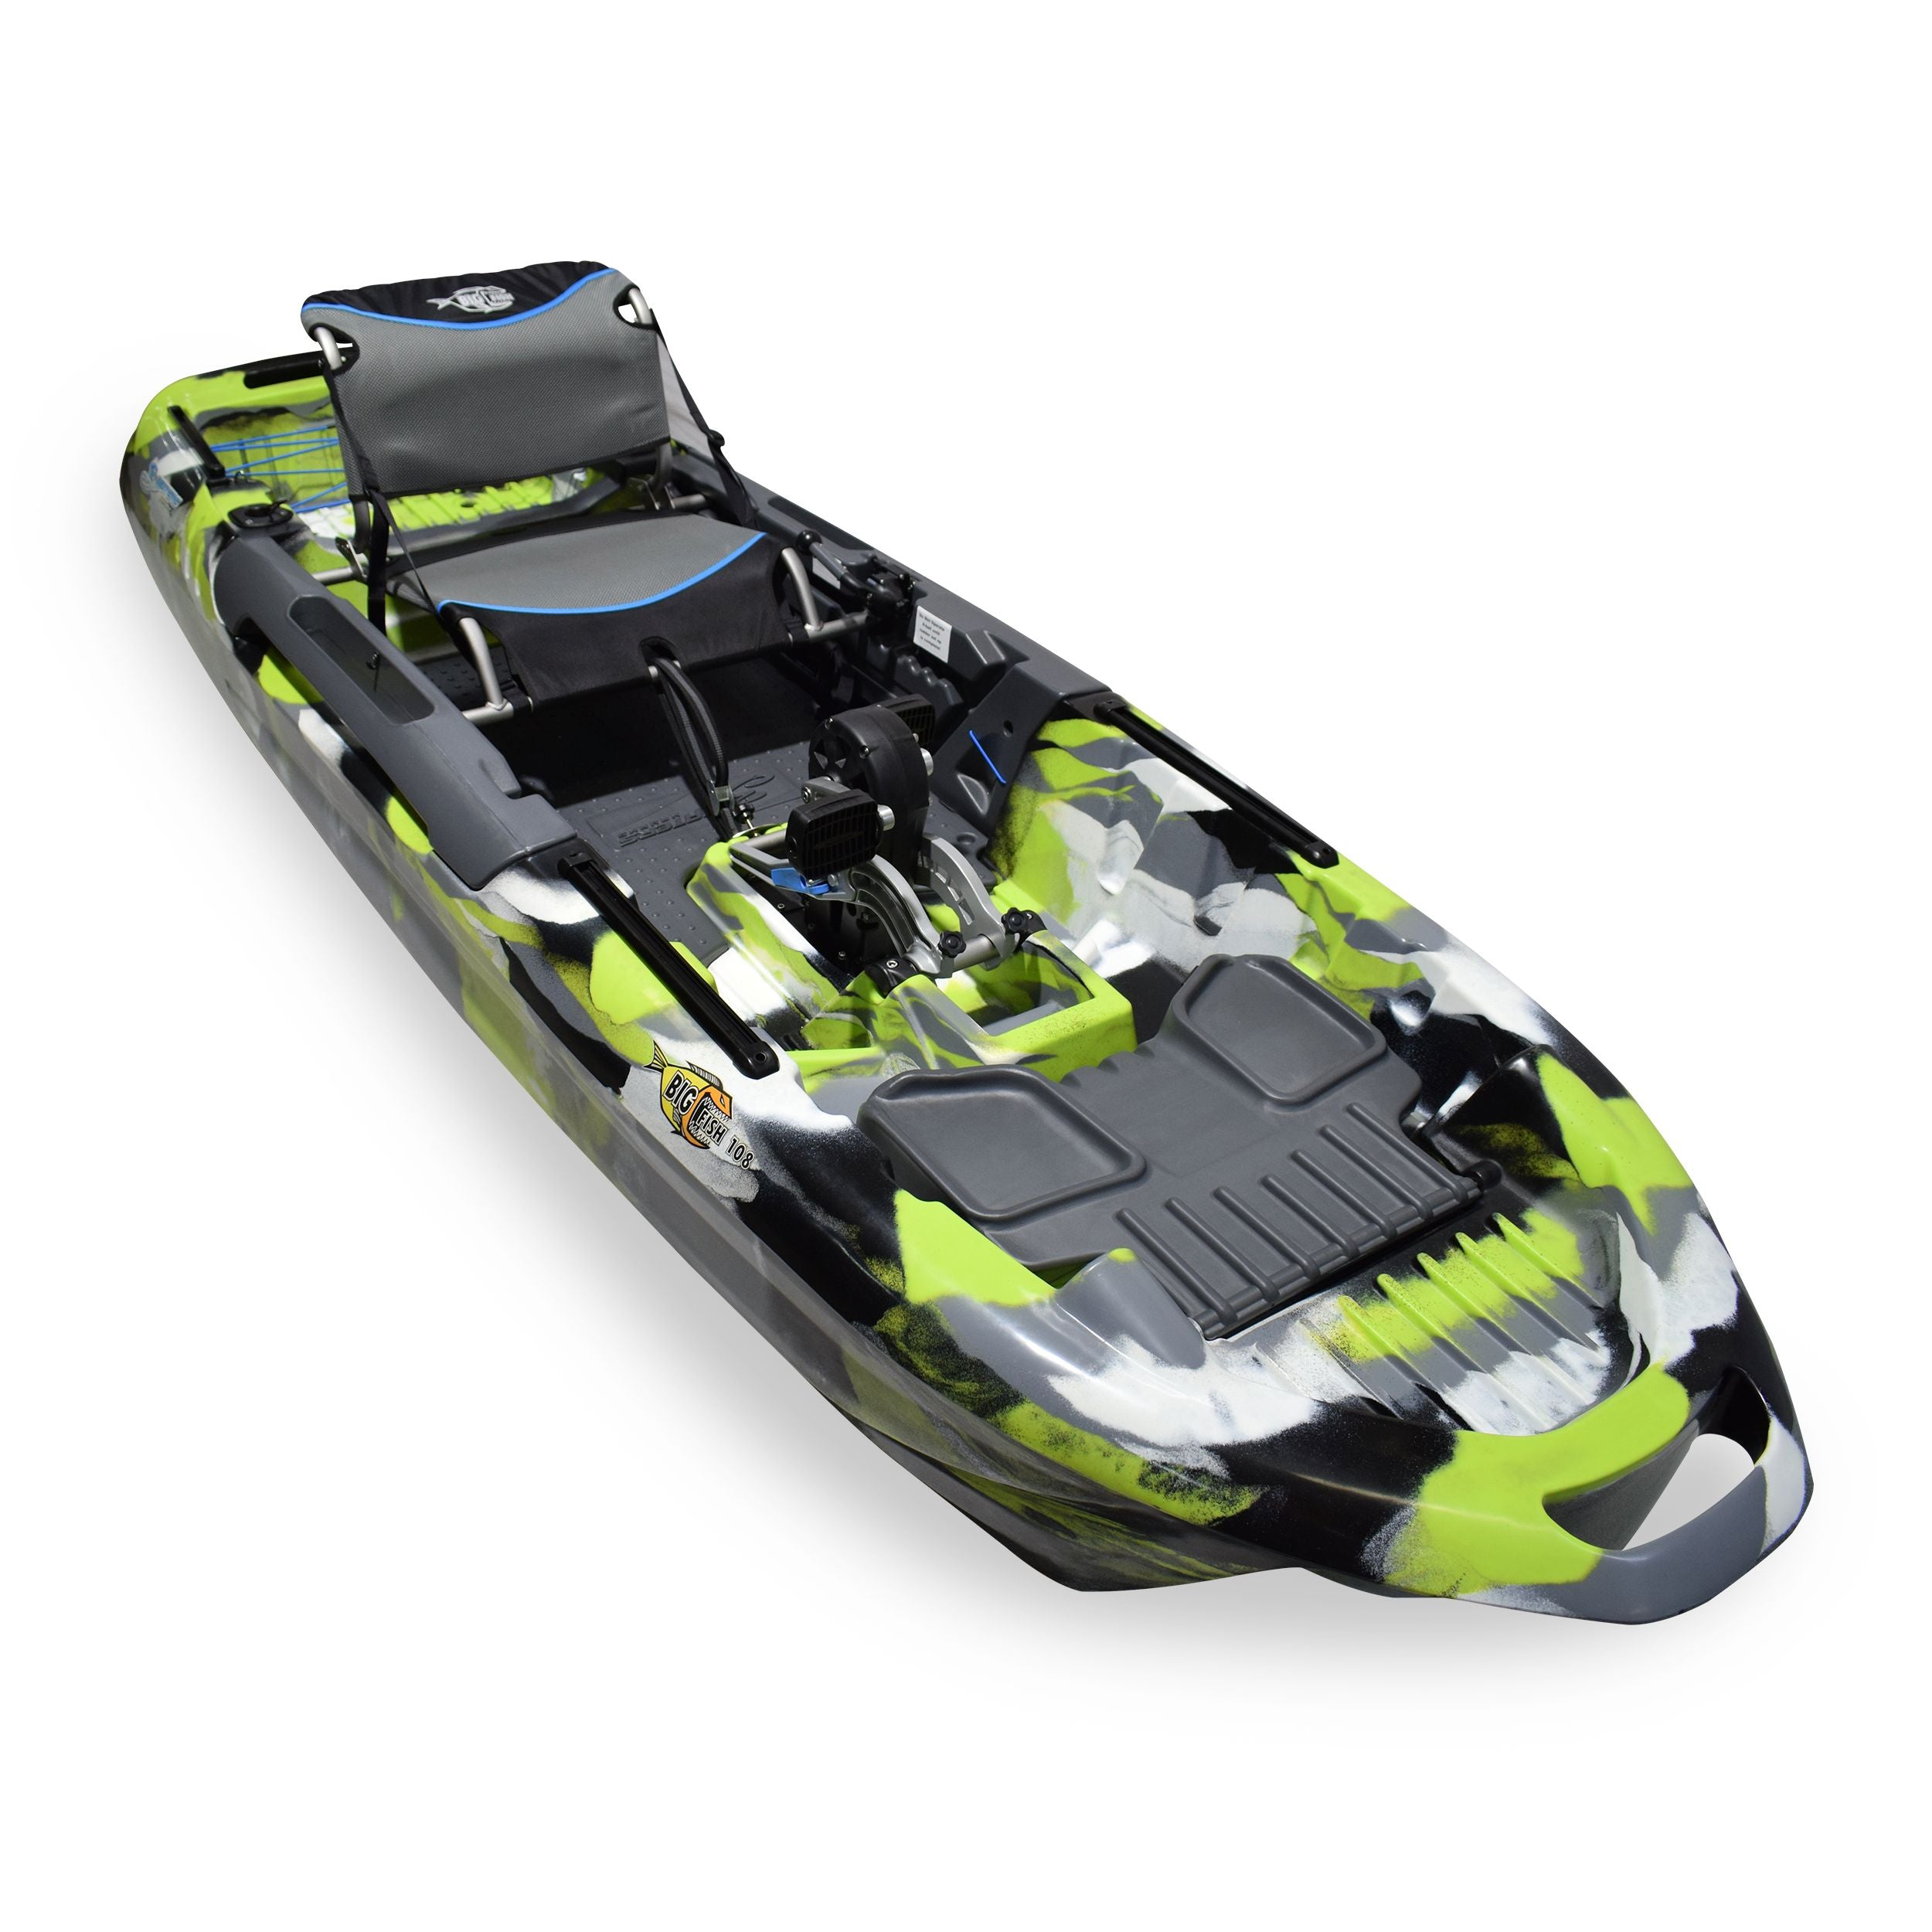 Sit On Top Kayaks Page 4 Waves Overseas All inflatable kayaks on sale at 50% off. waves overseas